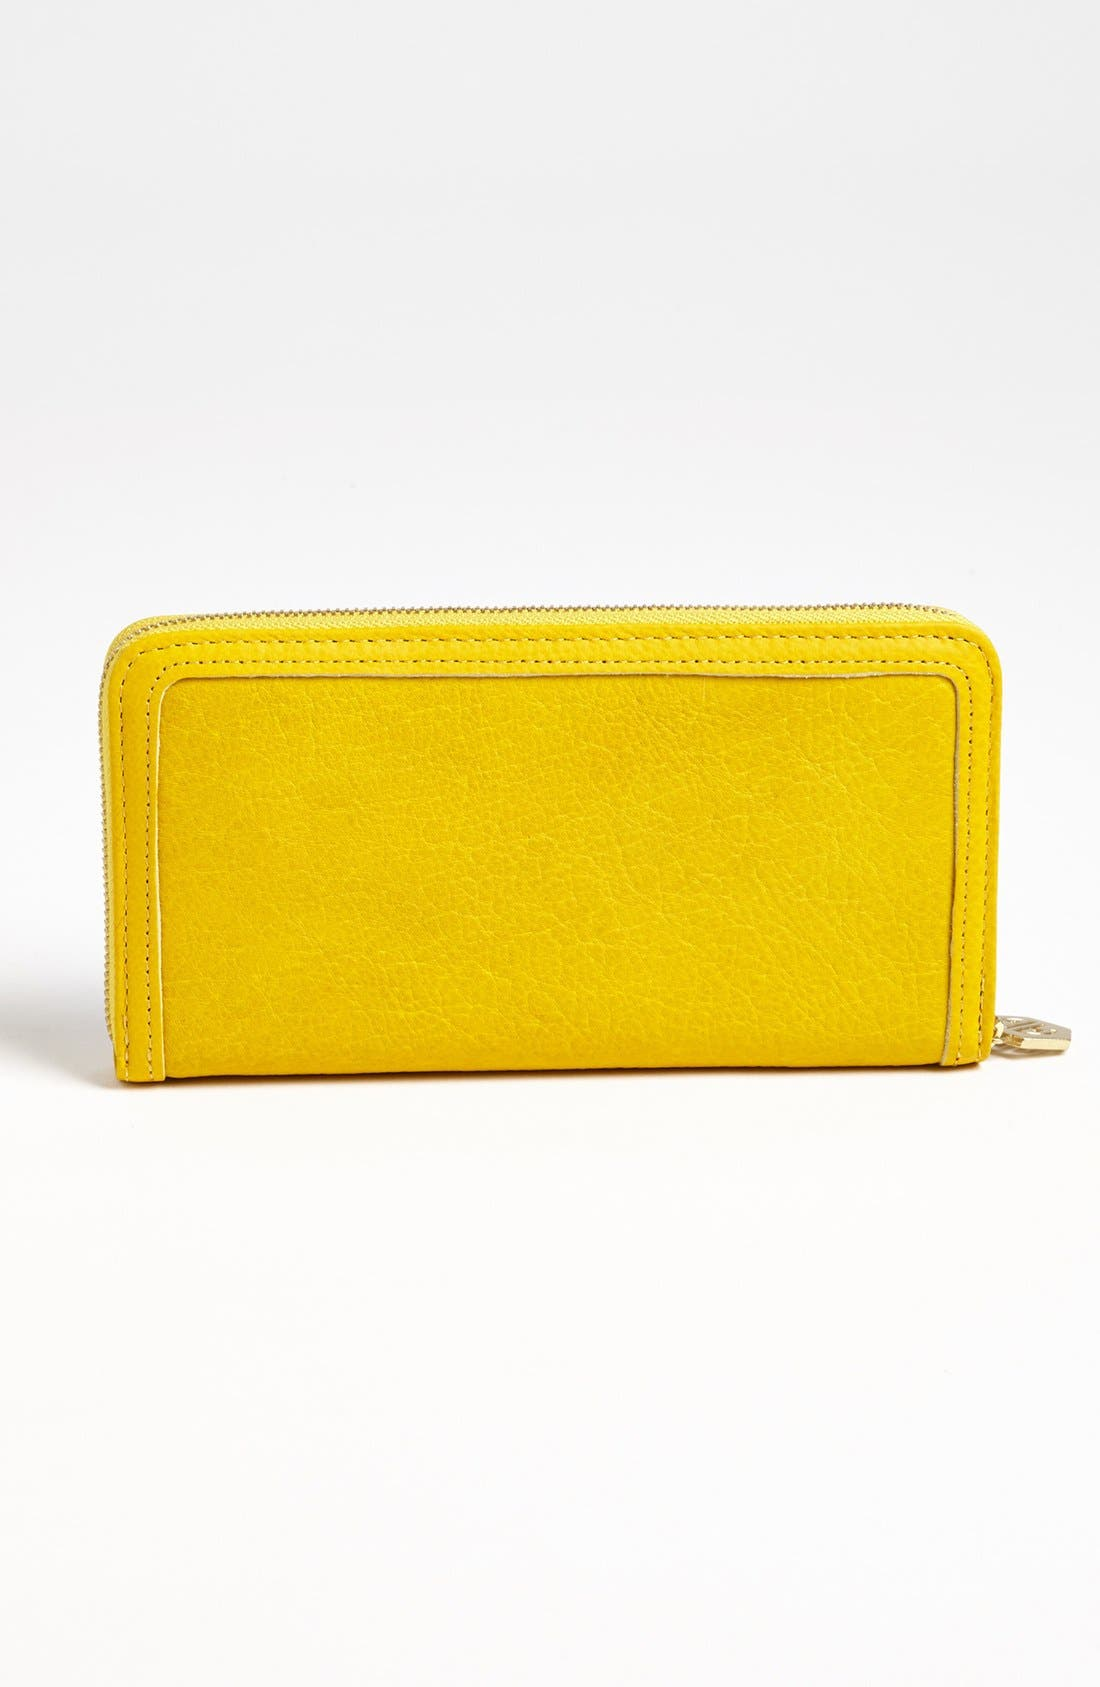 Alternate Image 3  - Jonathan Adler 'Fish' Continental Wallet